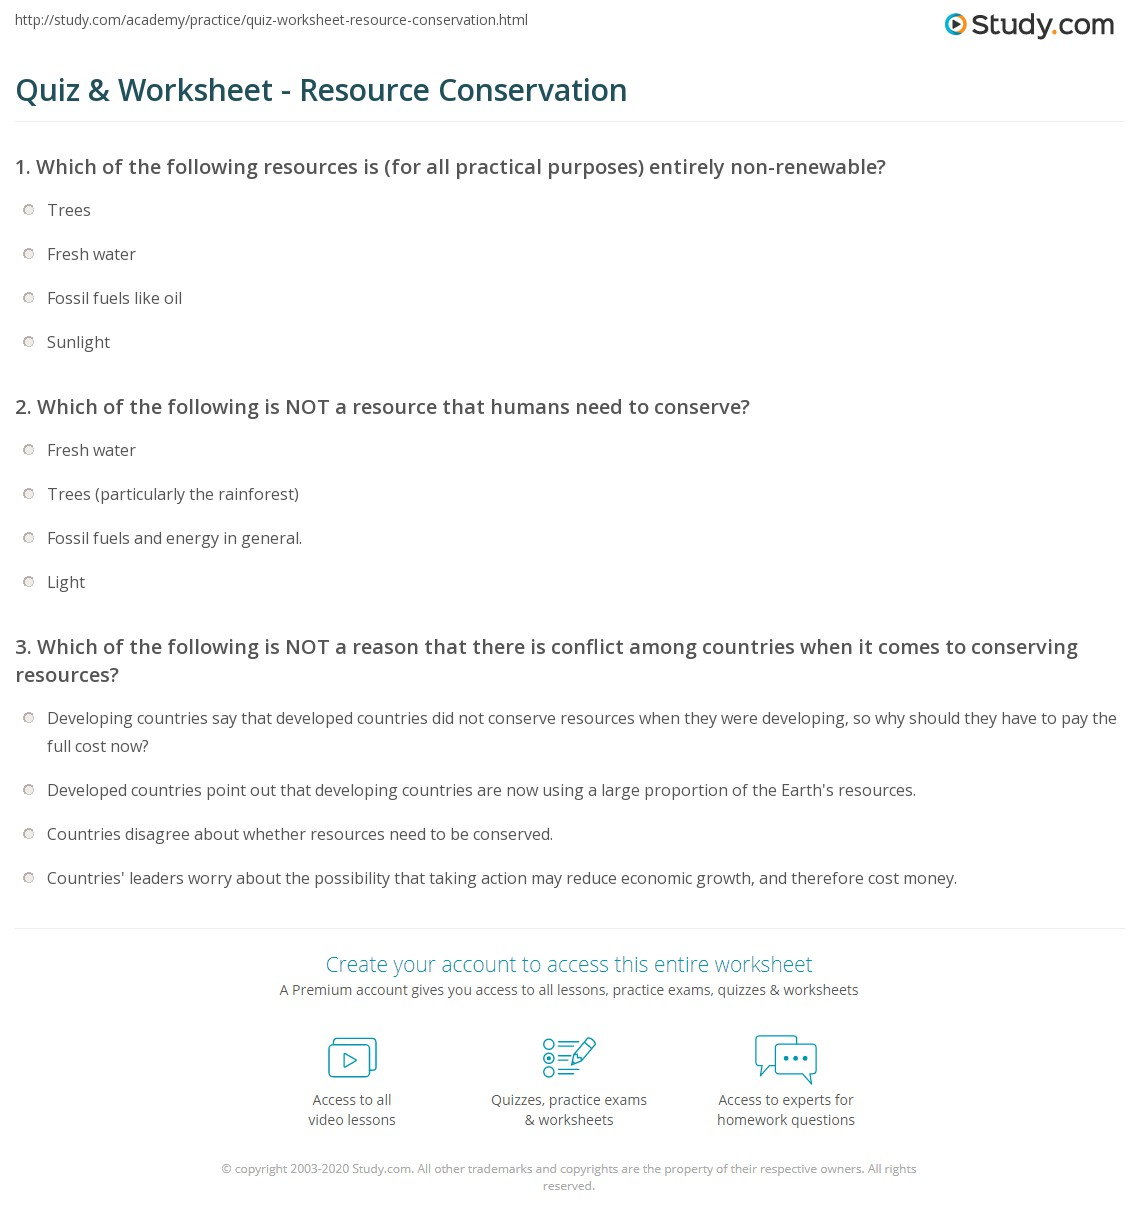 Quiz & Worksheet Resource Conservation